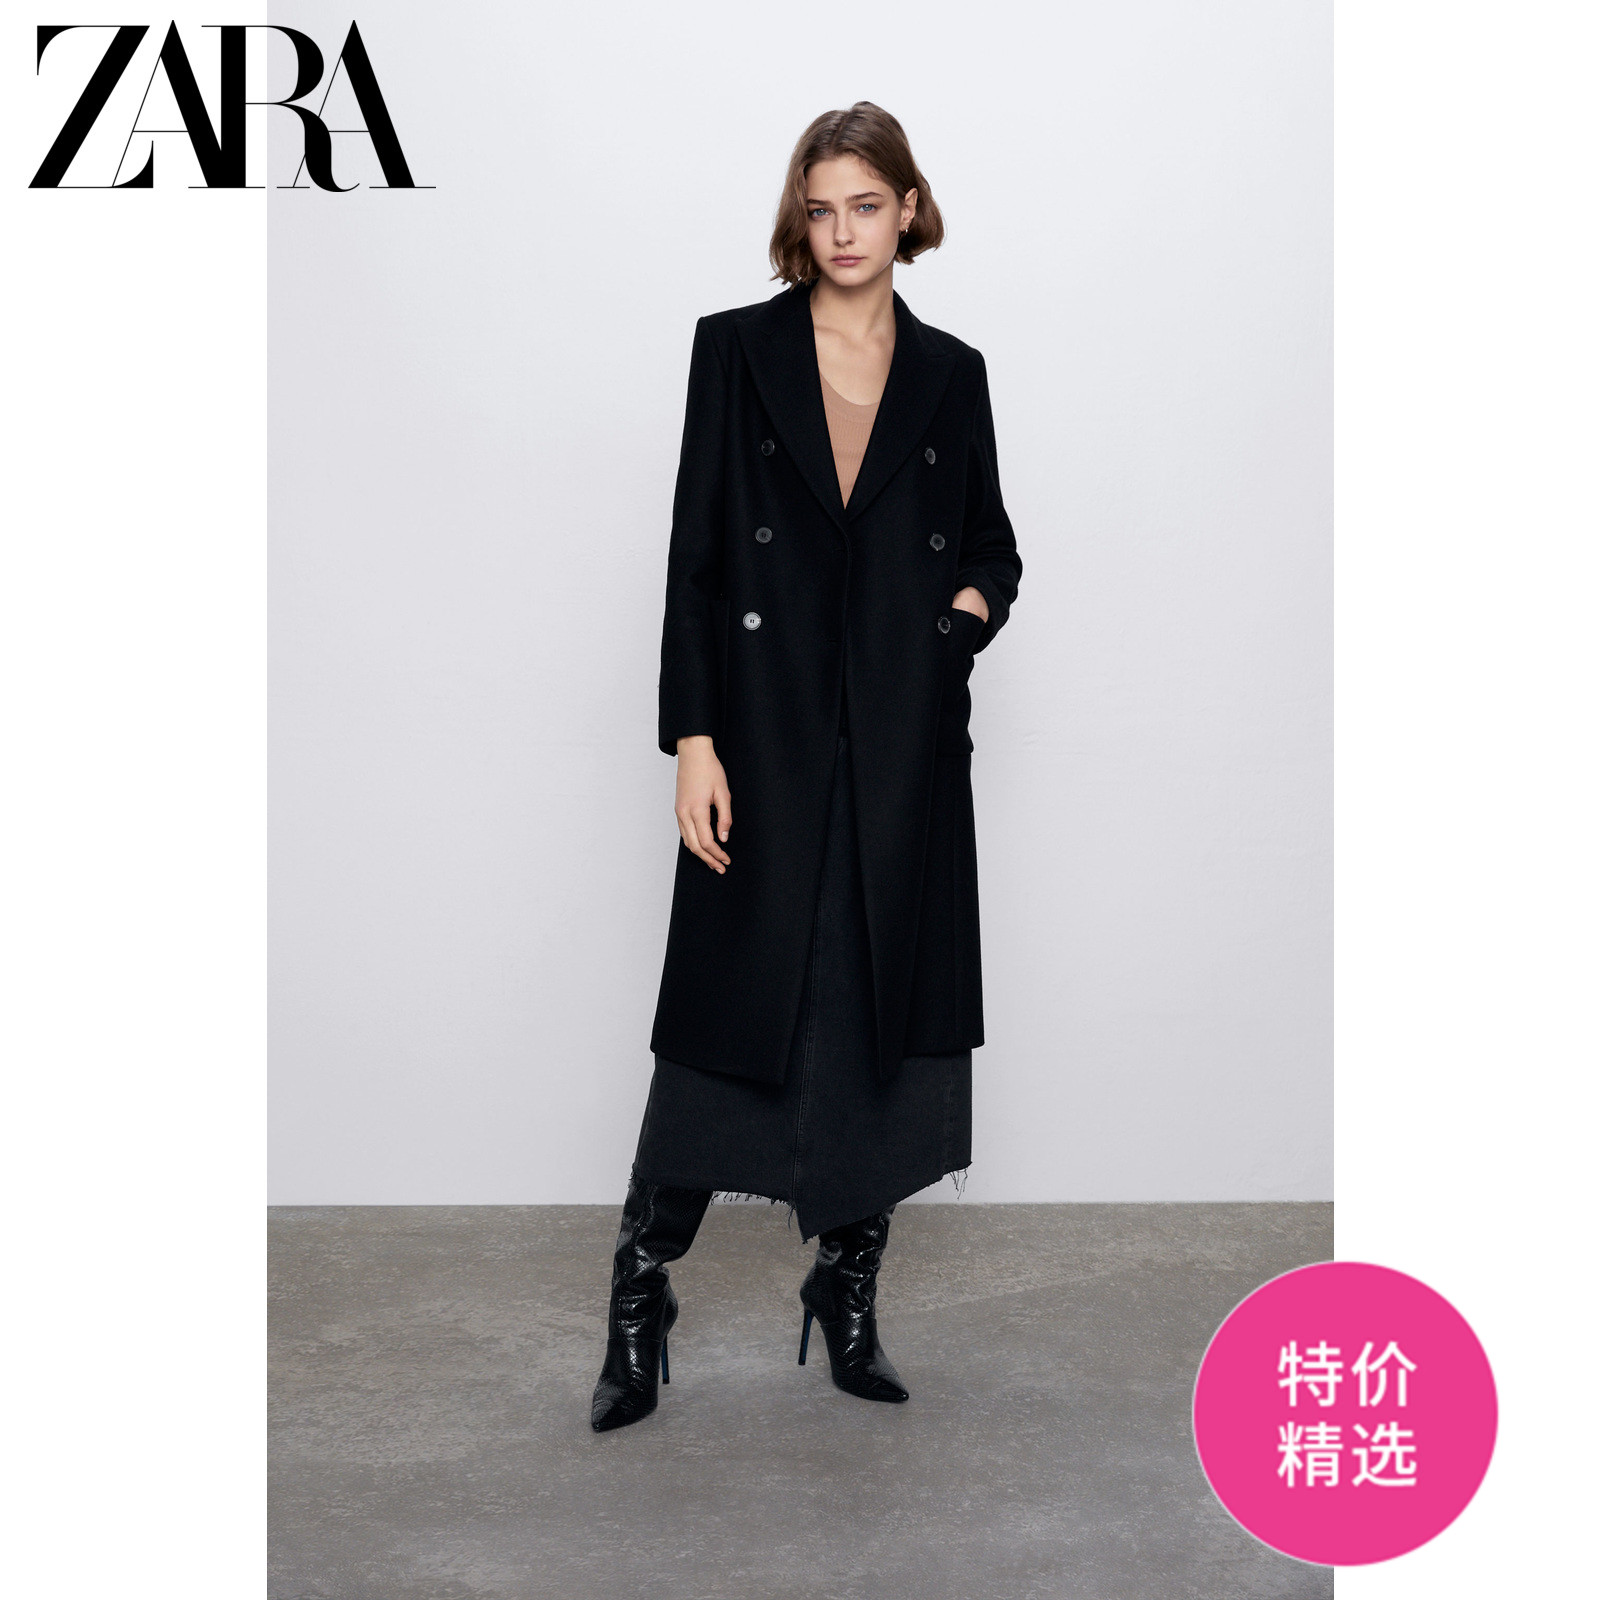 Zara new women's breasted wool coat 02103744800